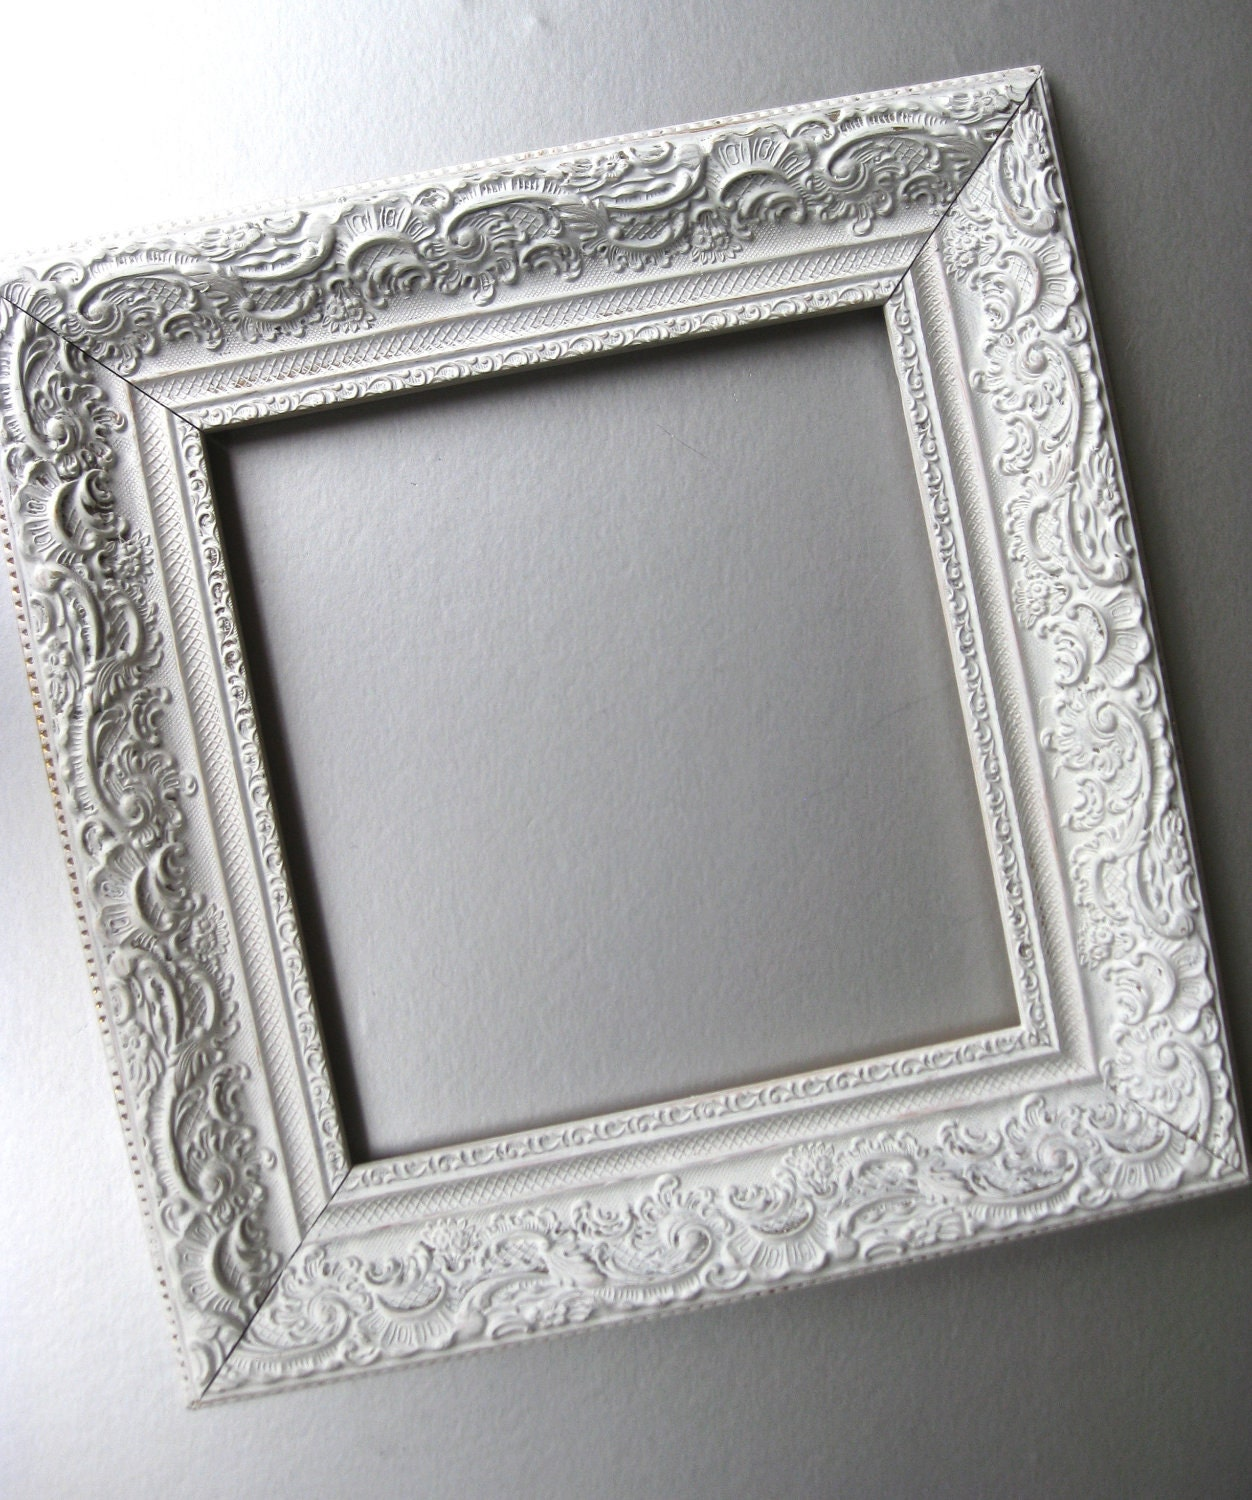 Shabby and chic frame cottage frame white frame vintage - Antique white picture frames ...